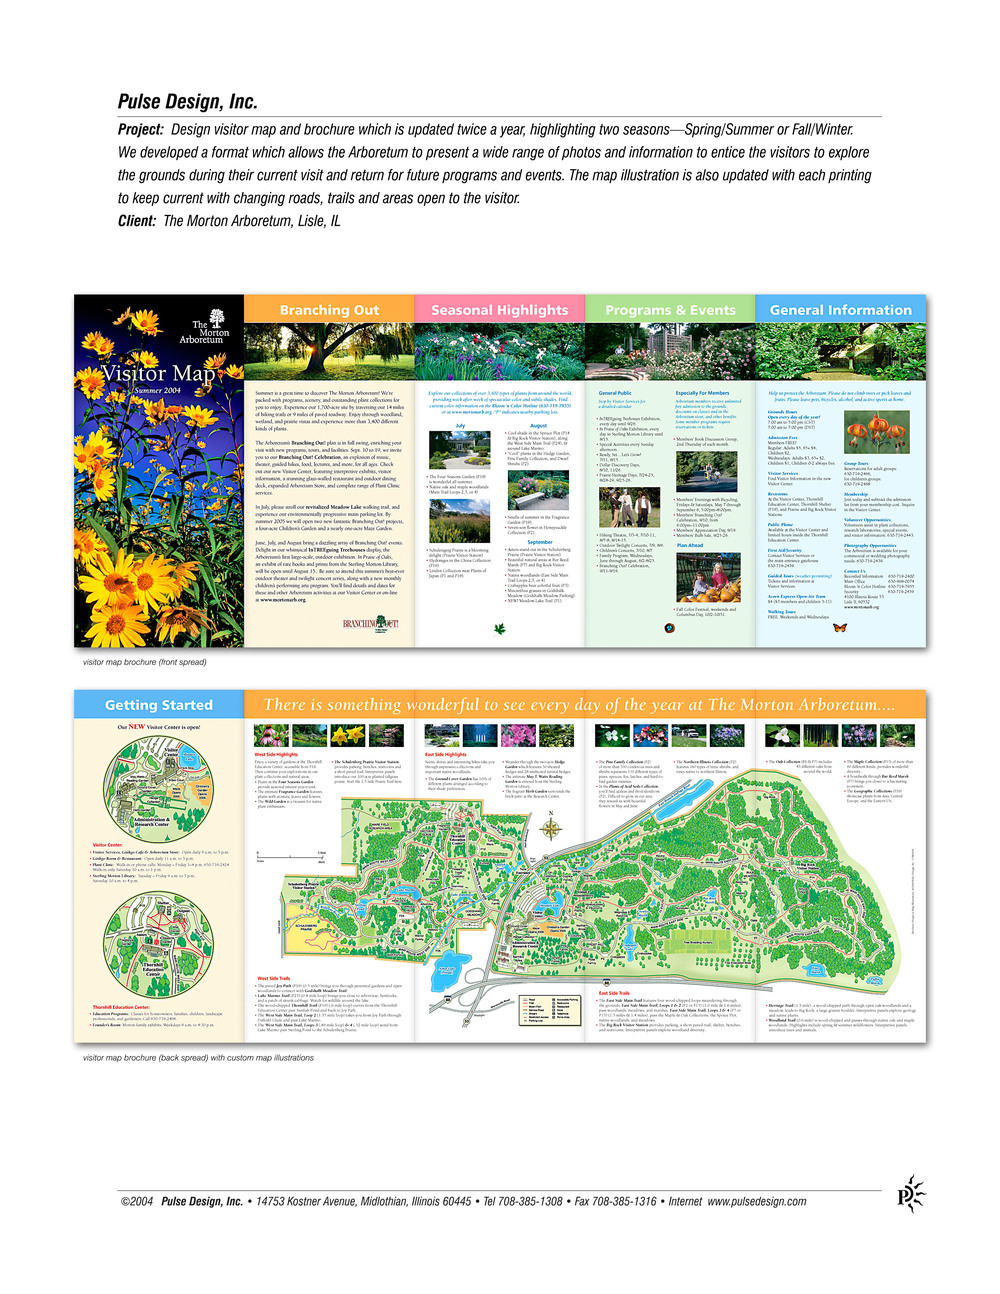 Morton-Arboretum-Visitor-Map-Spring-Pulse-Design-Inc.jpg